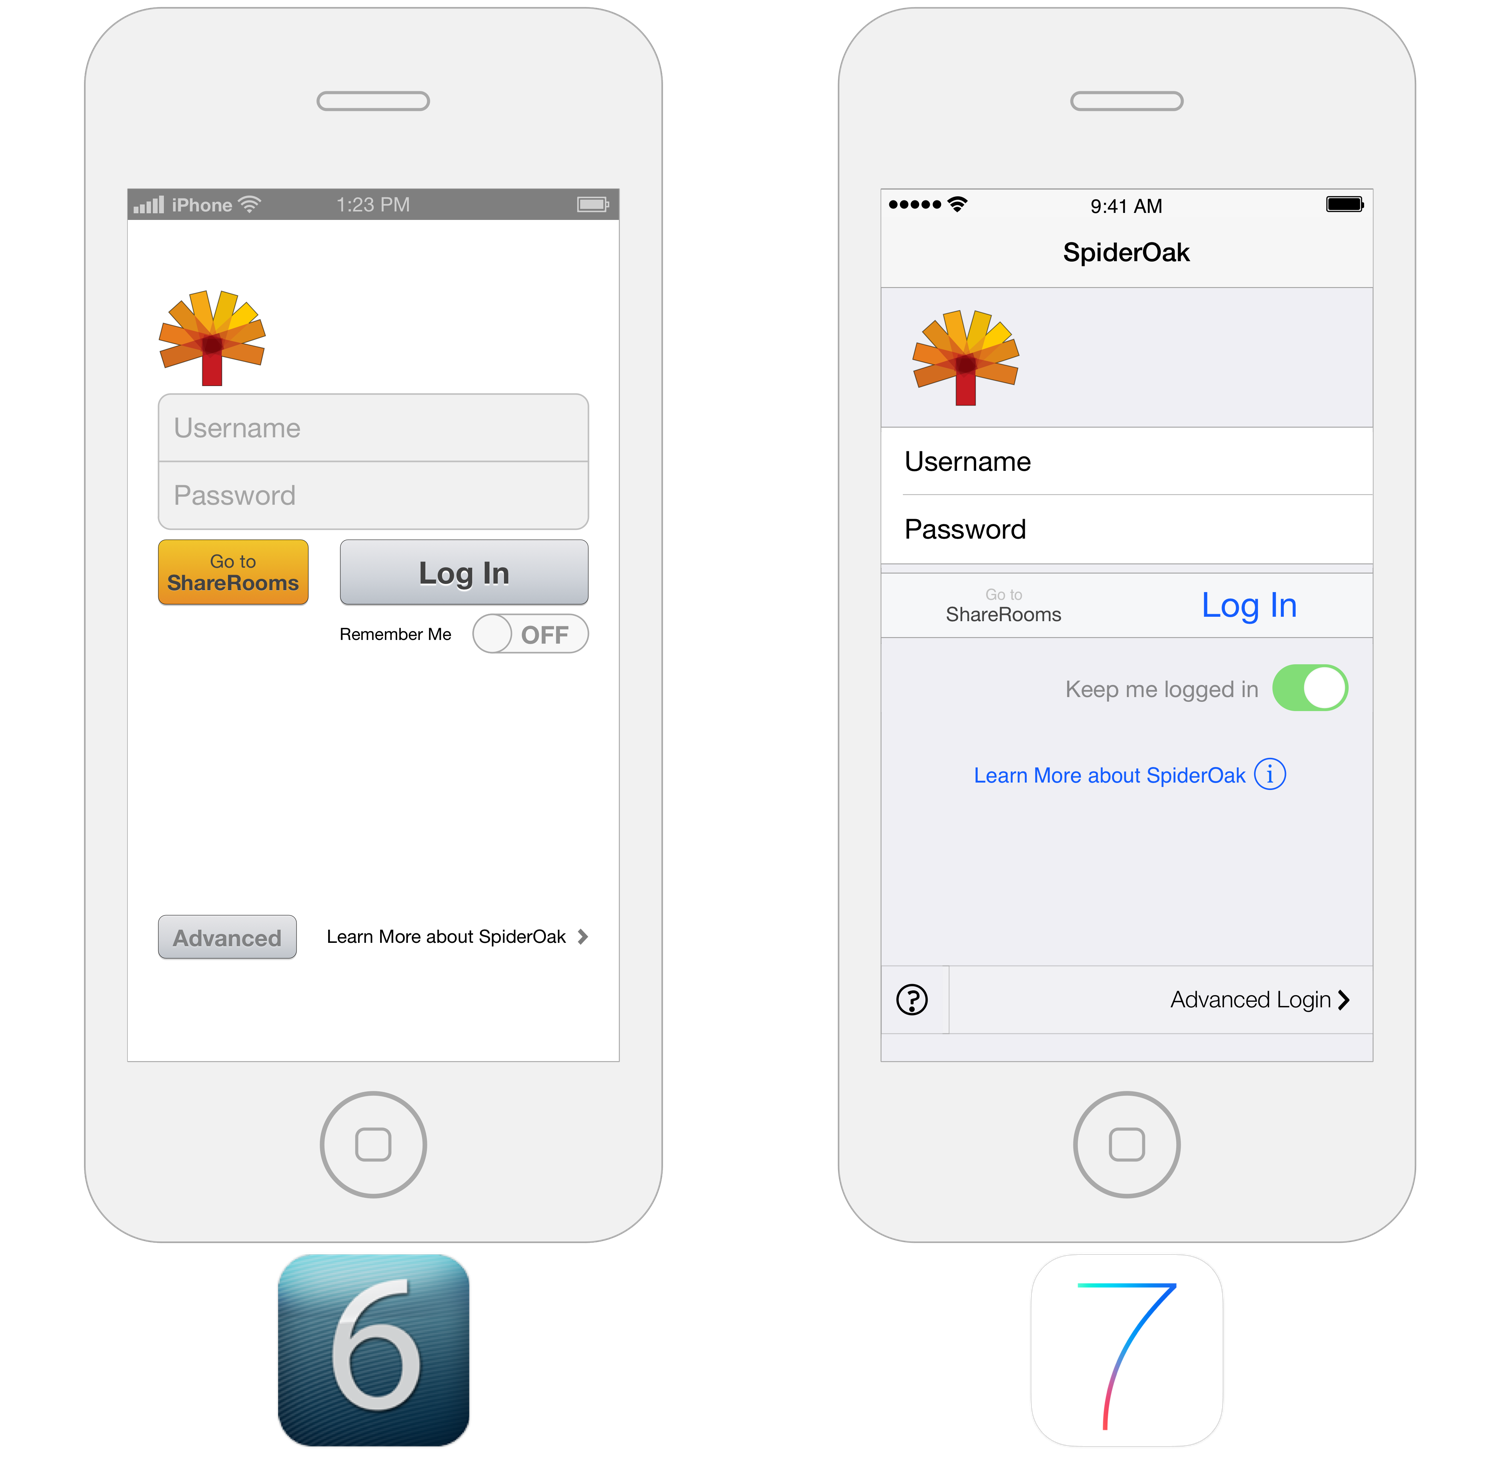 iOS-6-to-7-login.png